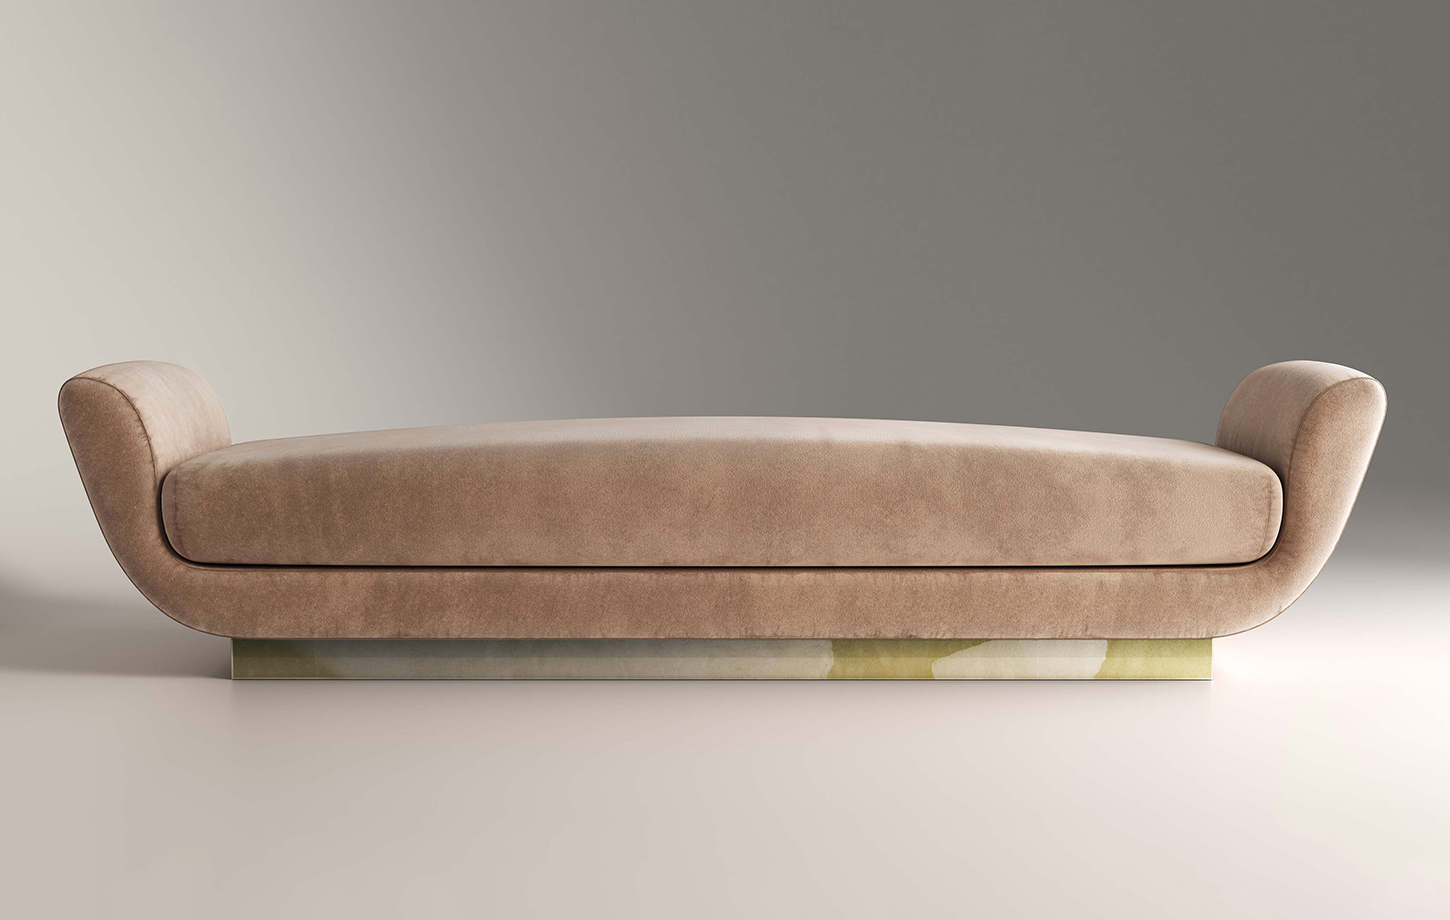 Keaton - Dormeuse made in Italy by Rossato